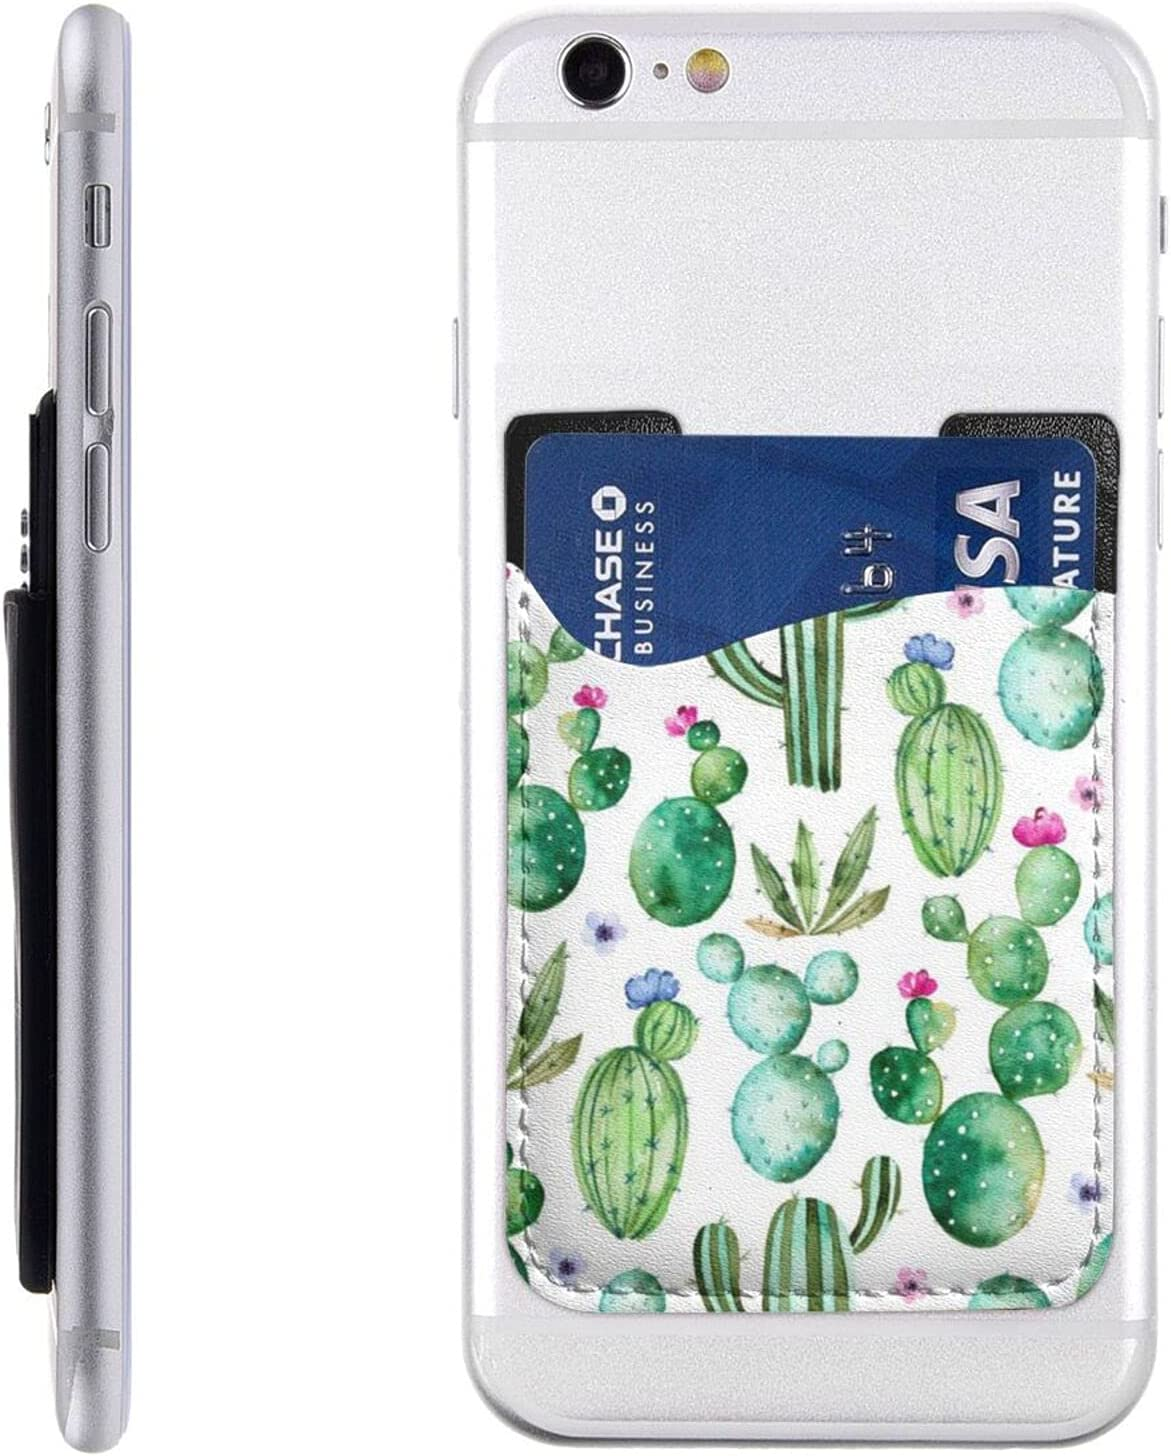 Cactus Phone Card Holder Credit Wallet Stick On Cell Back Case 3M Adhesive Smartphones ID Pocket Pouch Sleeve PU Leather Women Men Gifts (1PCS)